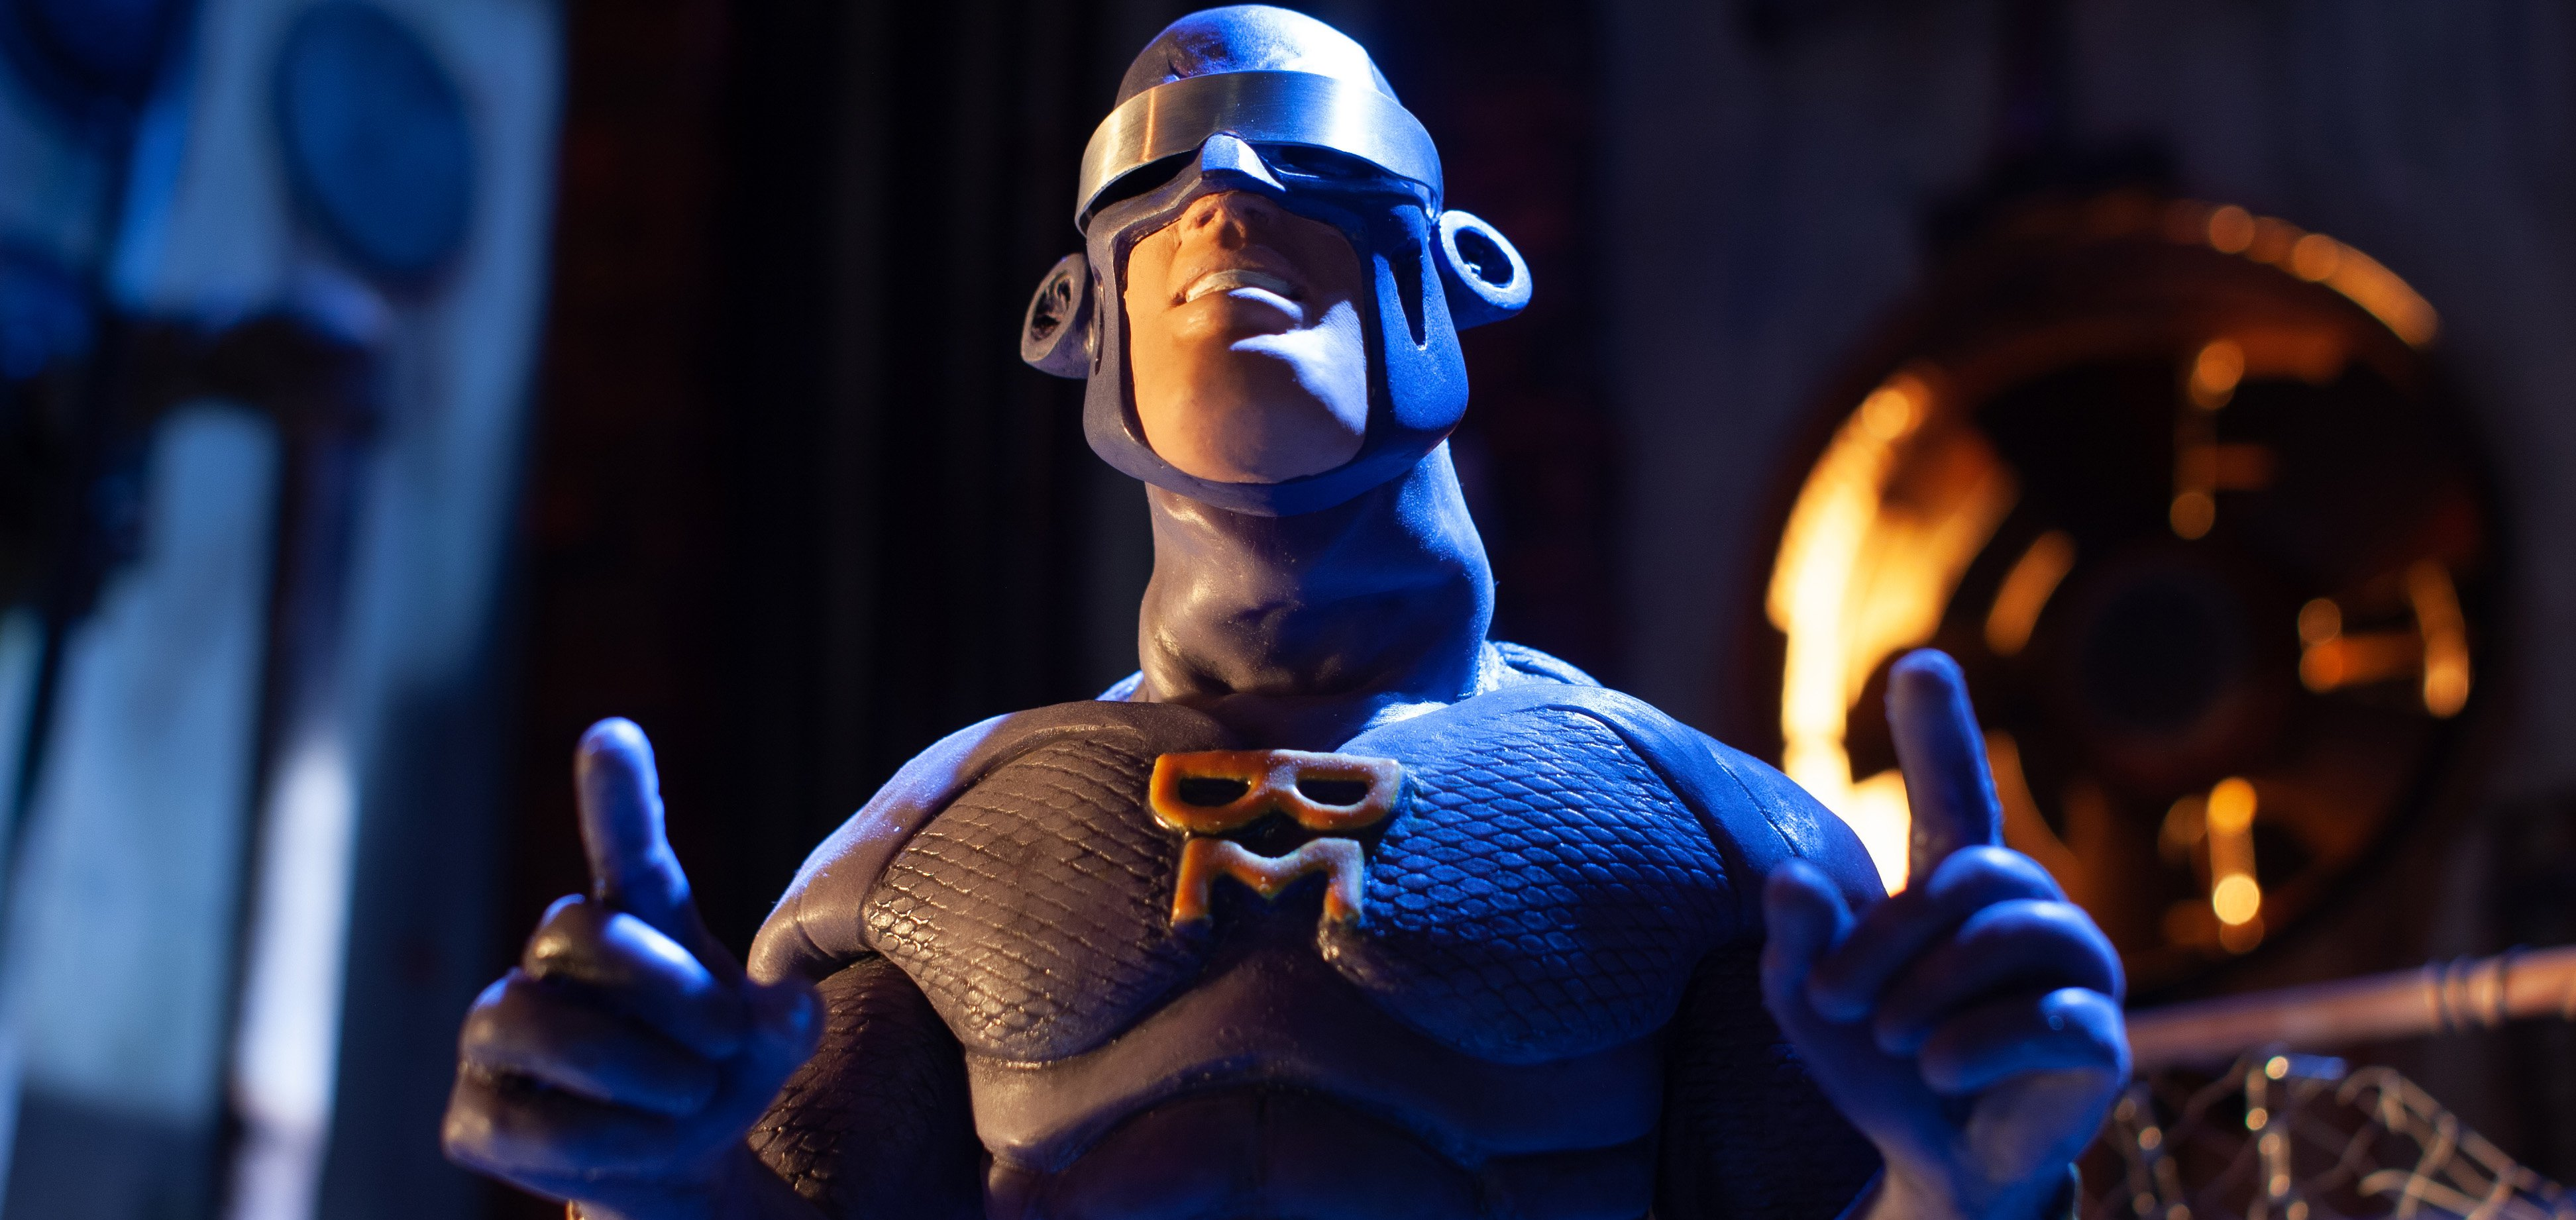 Stop motion superhero. Still from 'Meanwhile, At The Abandoned Factory…' by Michael Cusak